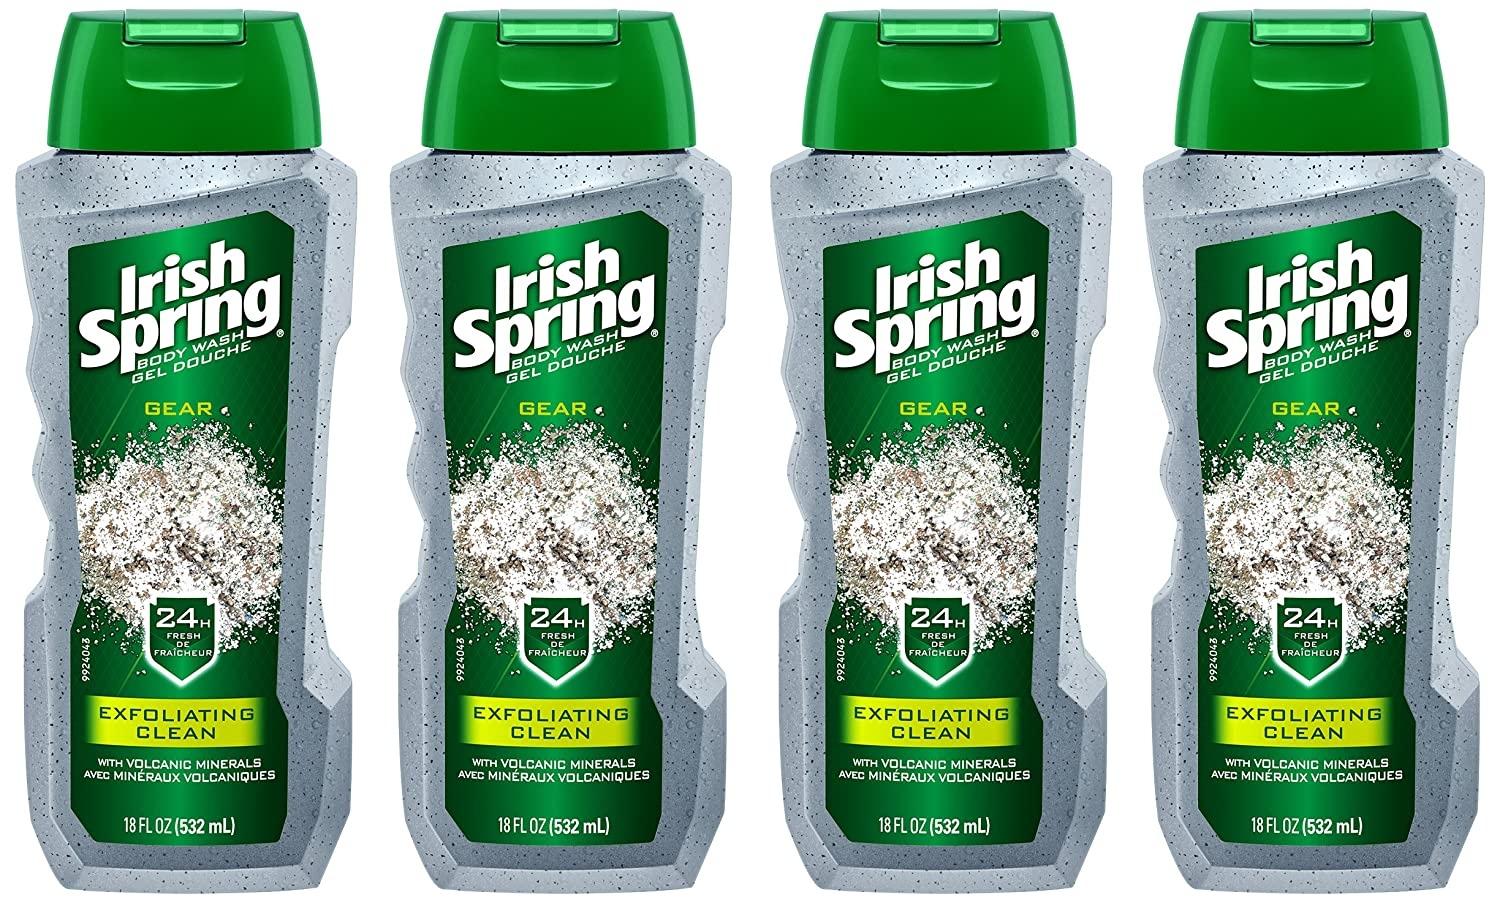 Irish Spring Gear Men's Body Wash, Exfoliating Clean with Volcanic Minerals - 18 fluid ounce (4 Pack)